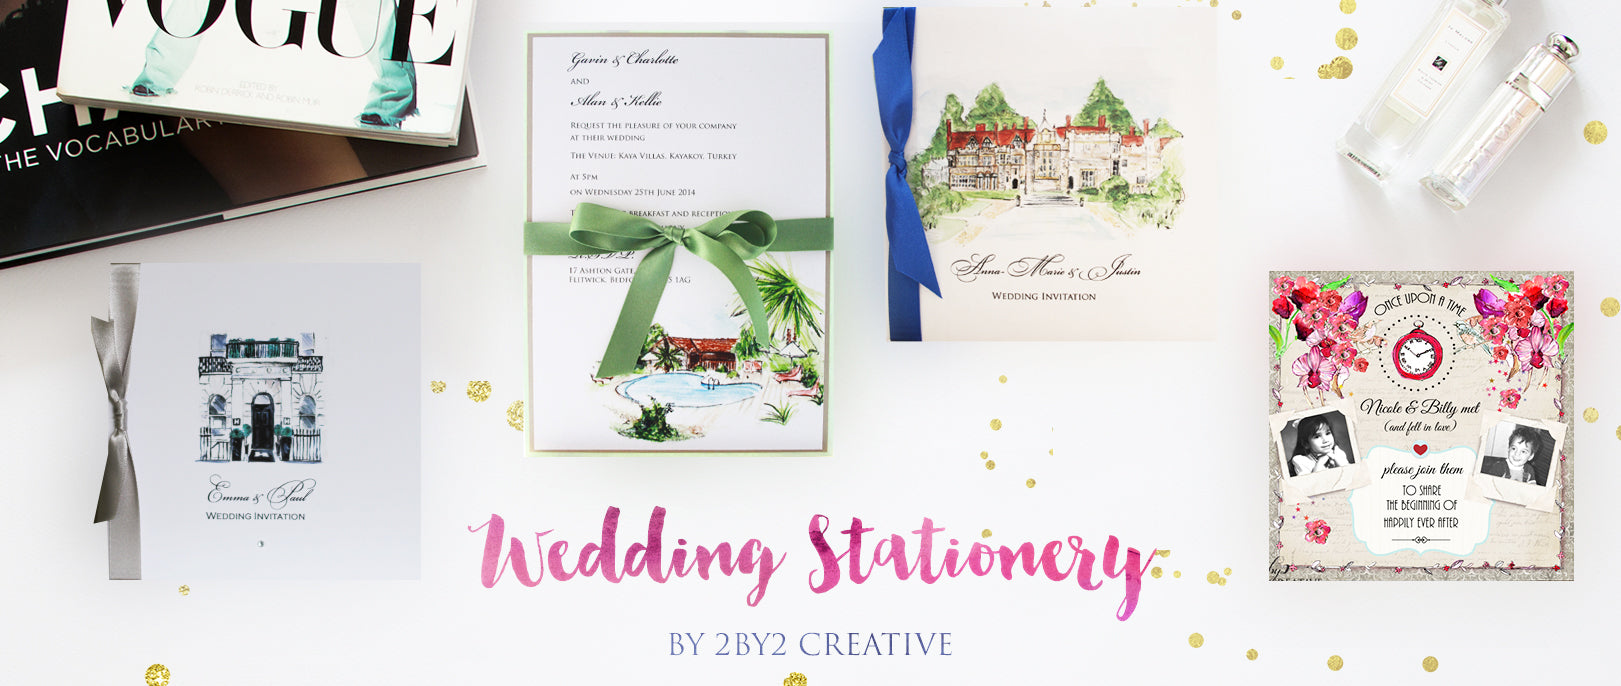 2by2 creative weddings